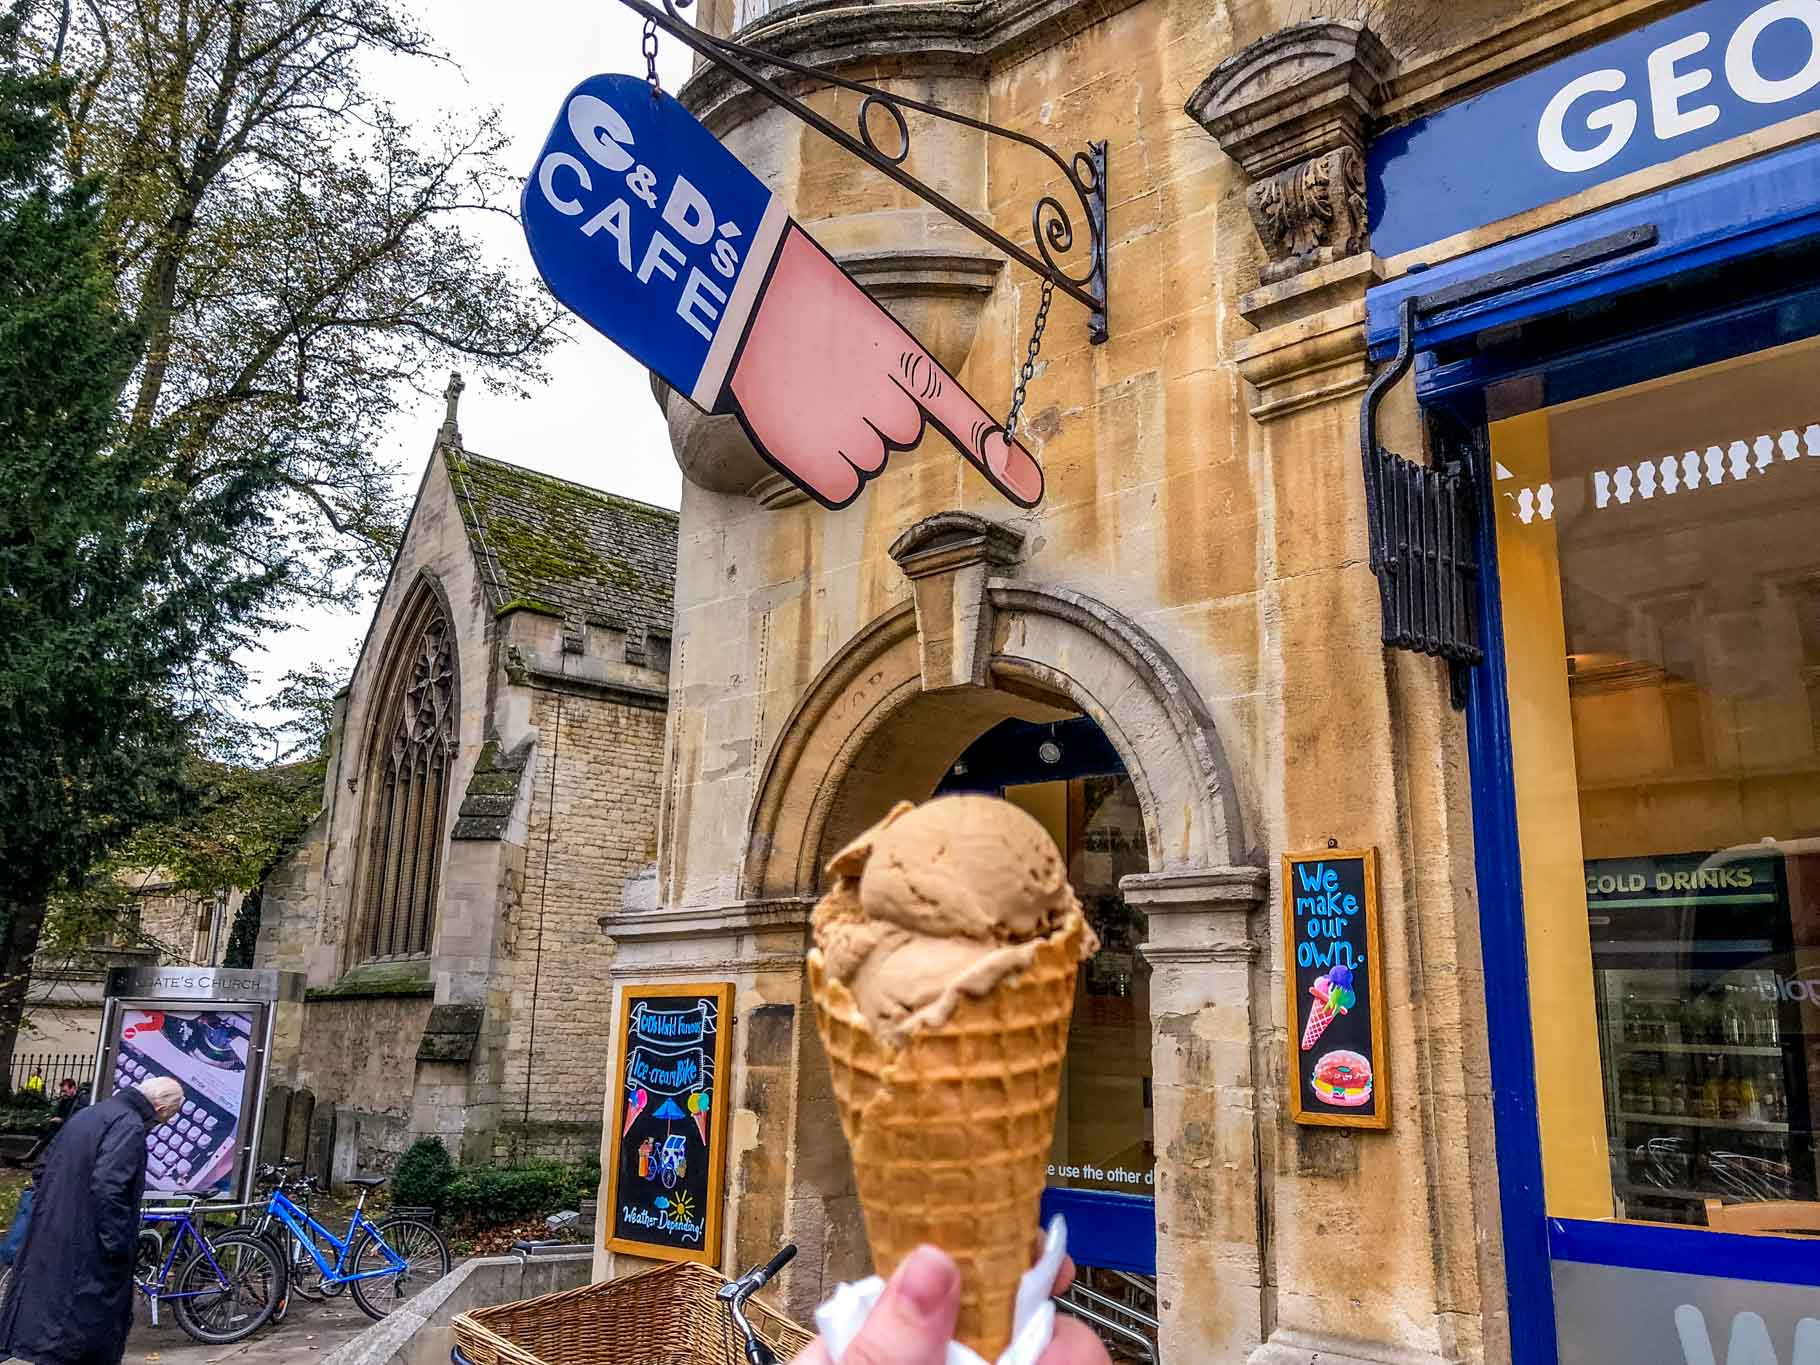 Ice cream cone in front of a hand-shaped sign for G&Ds cafe